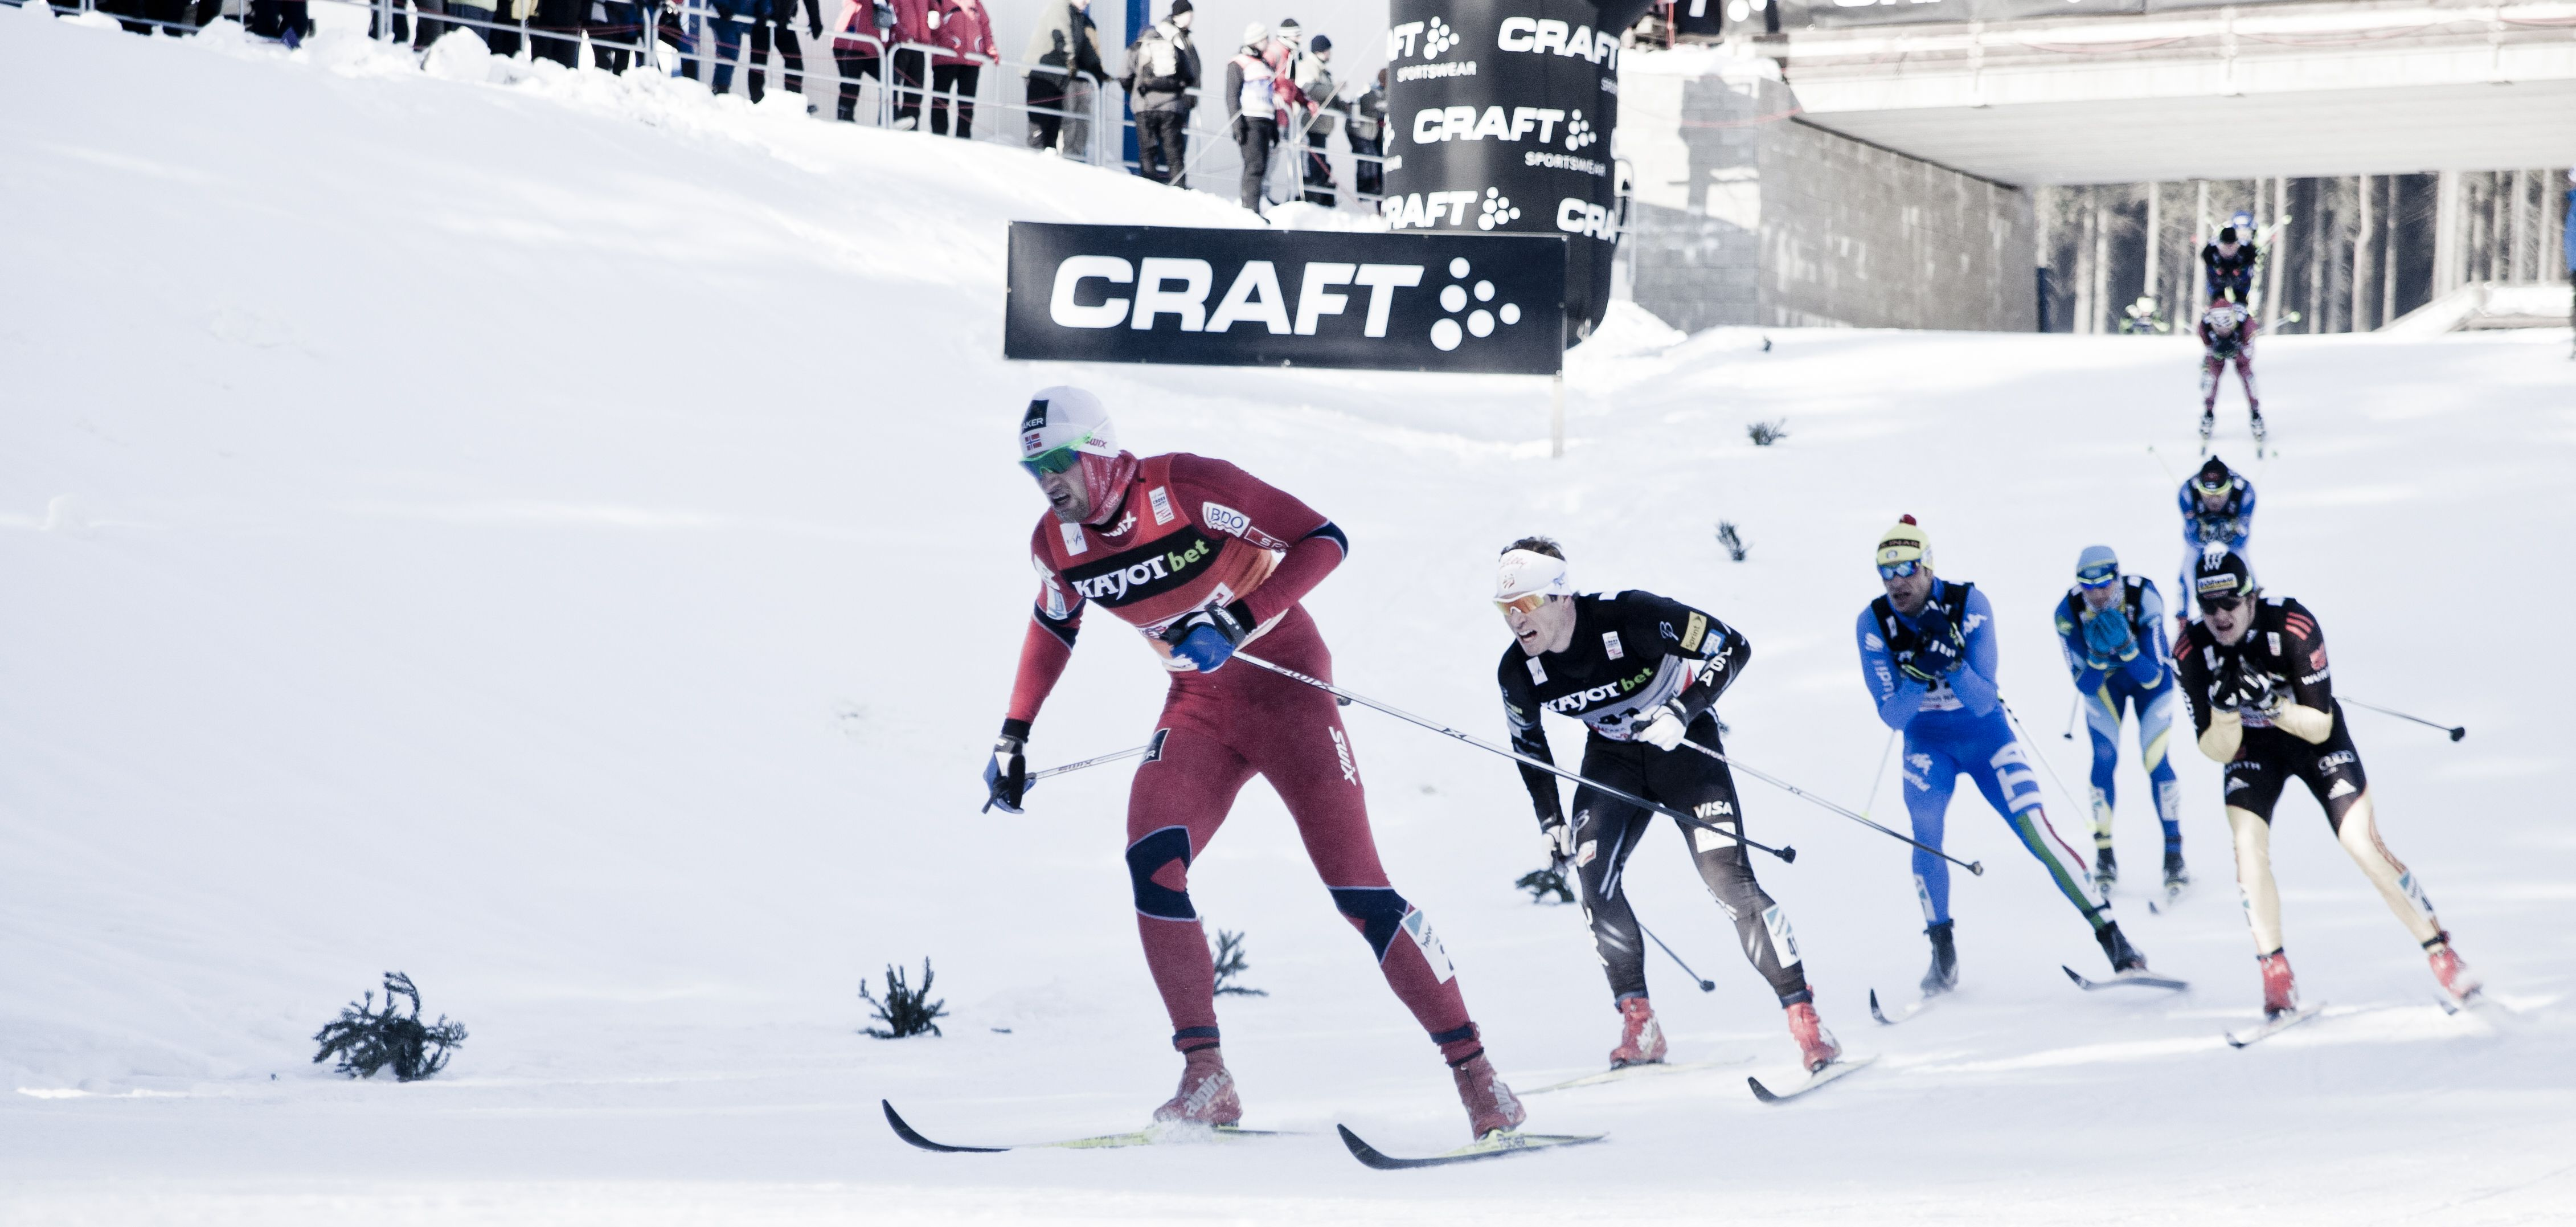 Petter Northug I Nove Mesto Cross Country Skier Cross Country Skiing Norway